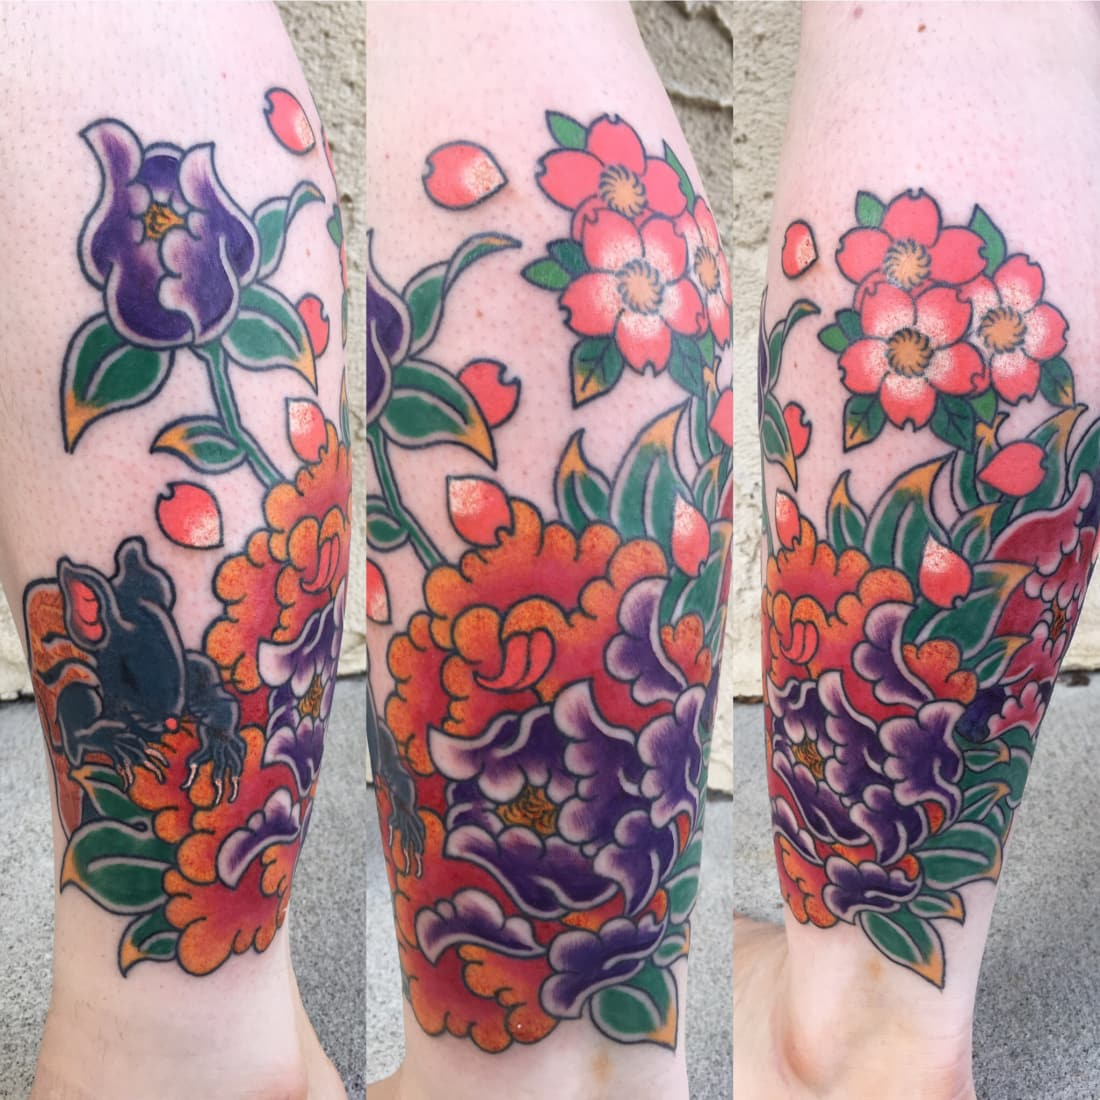 Healing Tattoo: Tattoos: Difficult Healing For Sensitive Skin